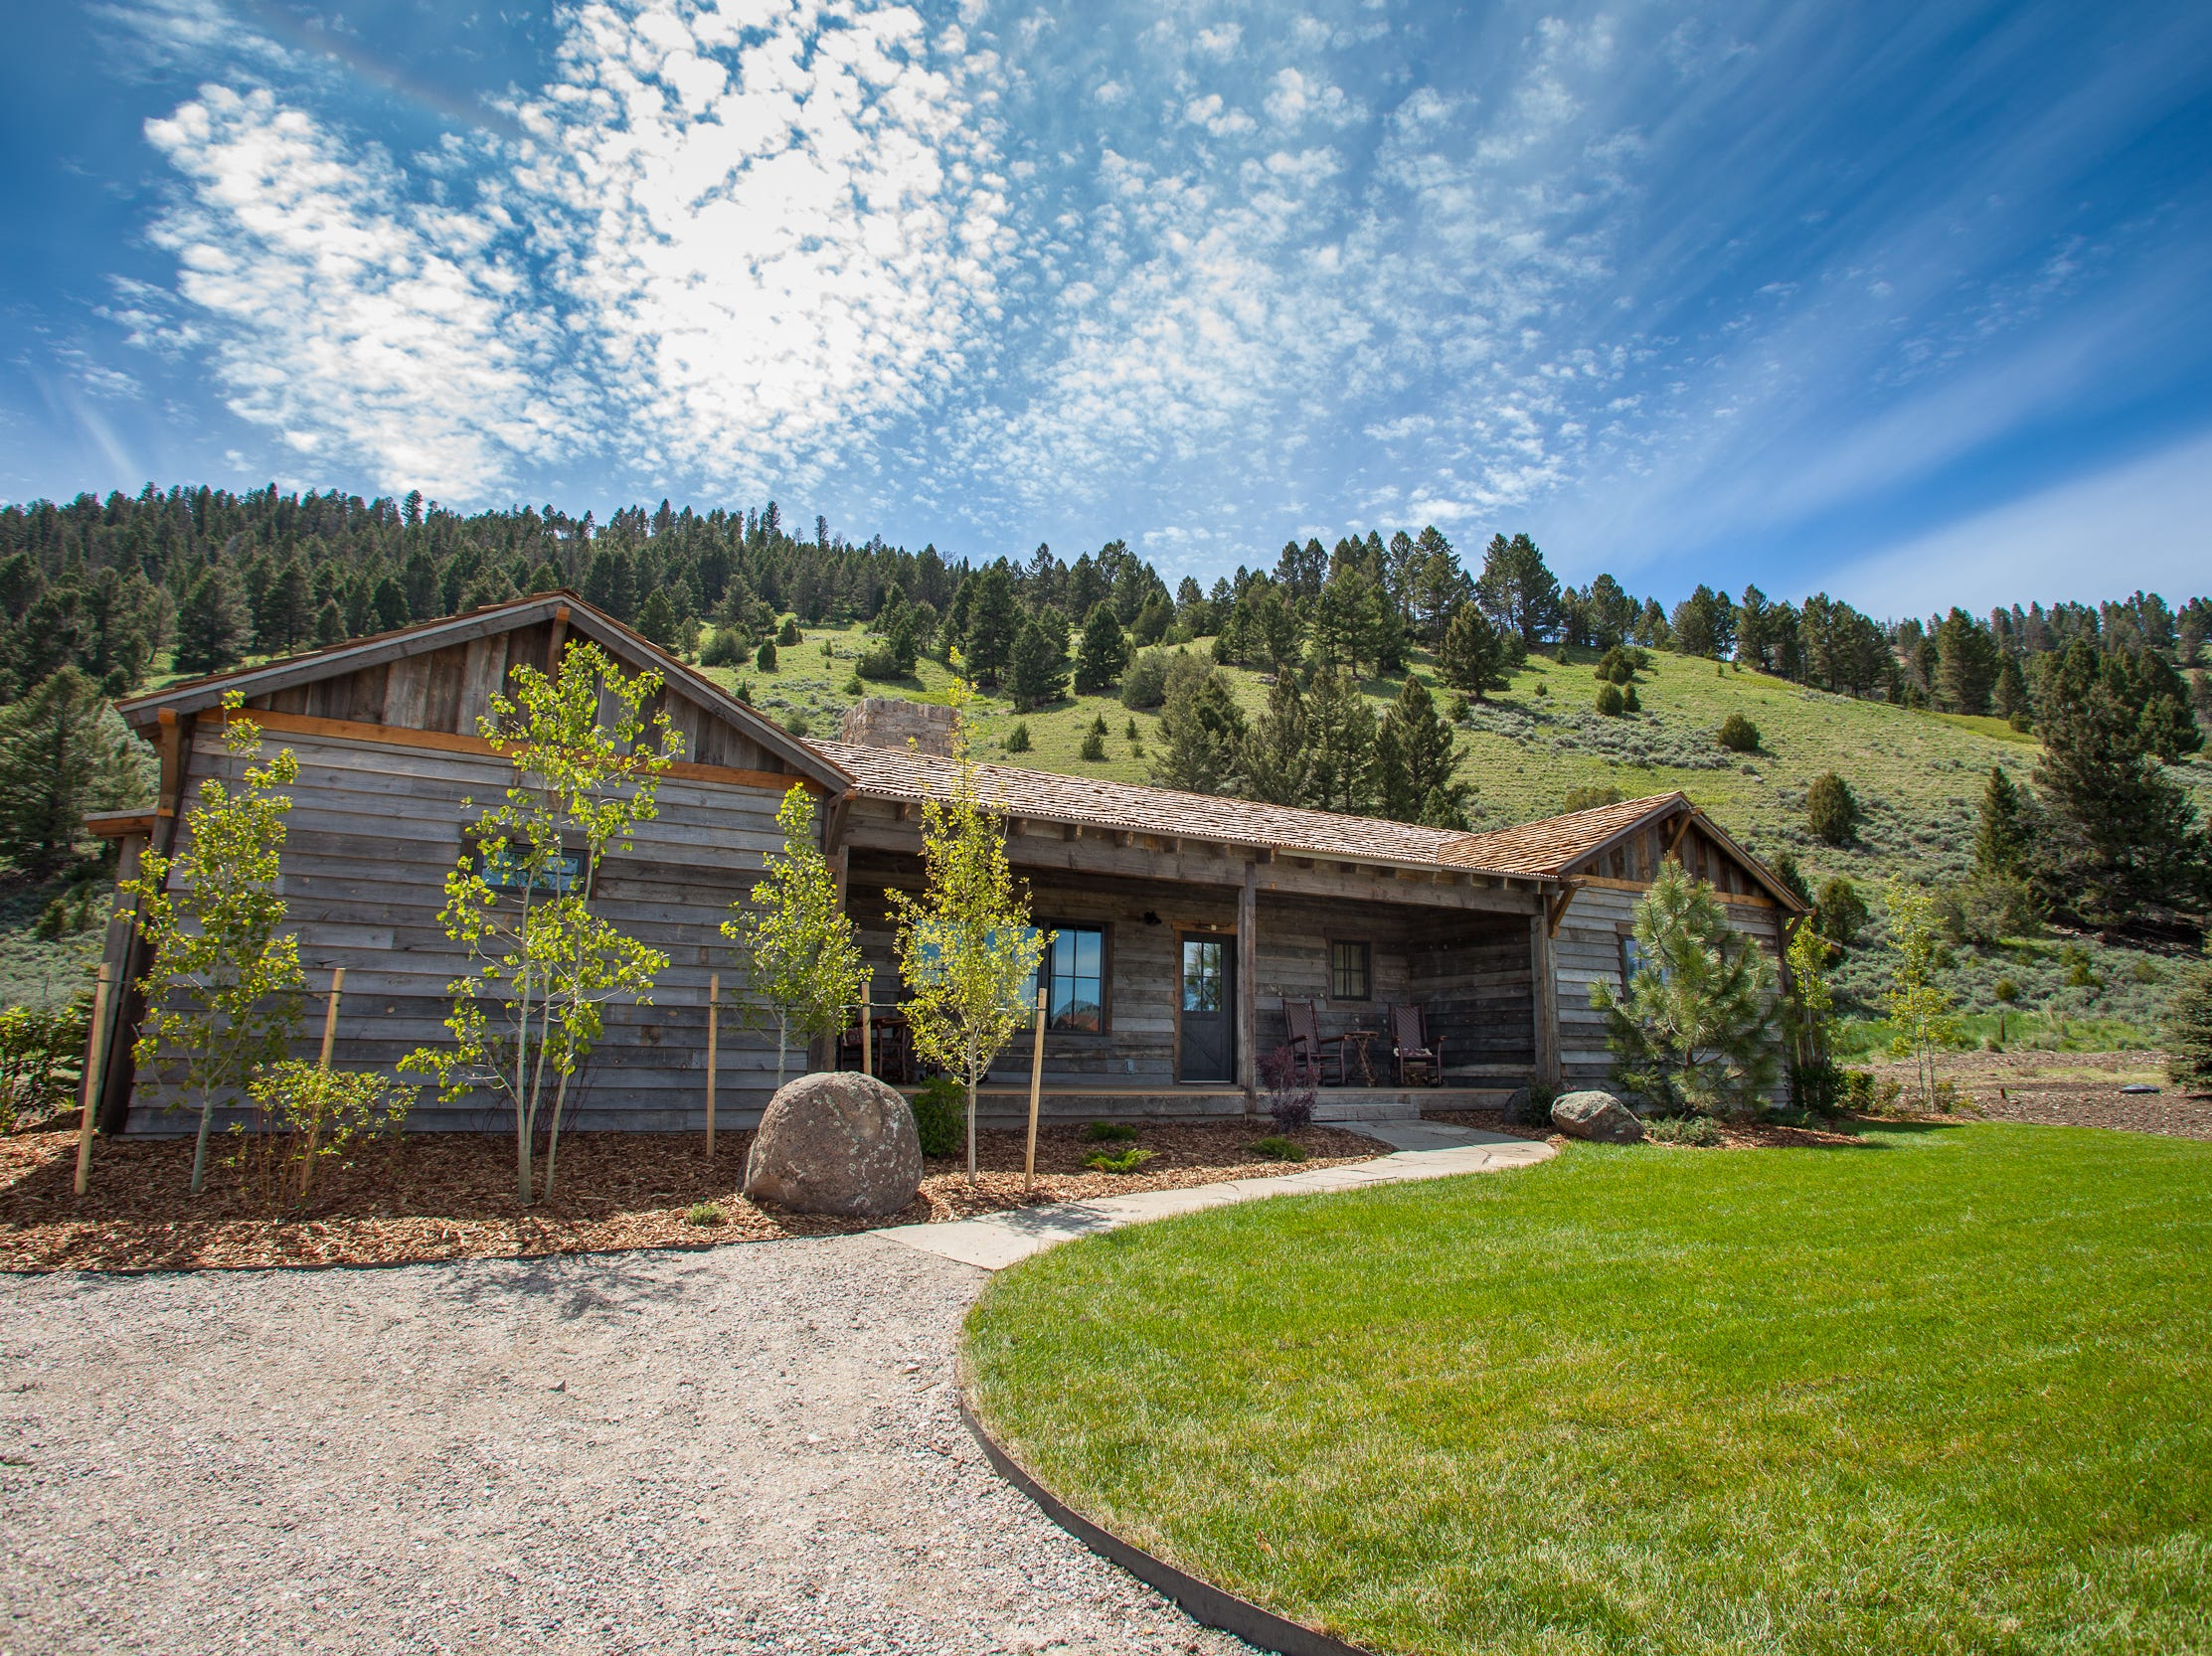 The Ranch at Rock Creek near Philipsburg has multi-bedroom houses available, along with canvas glamping tents, a lodge and a renovated historic barn.